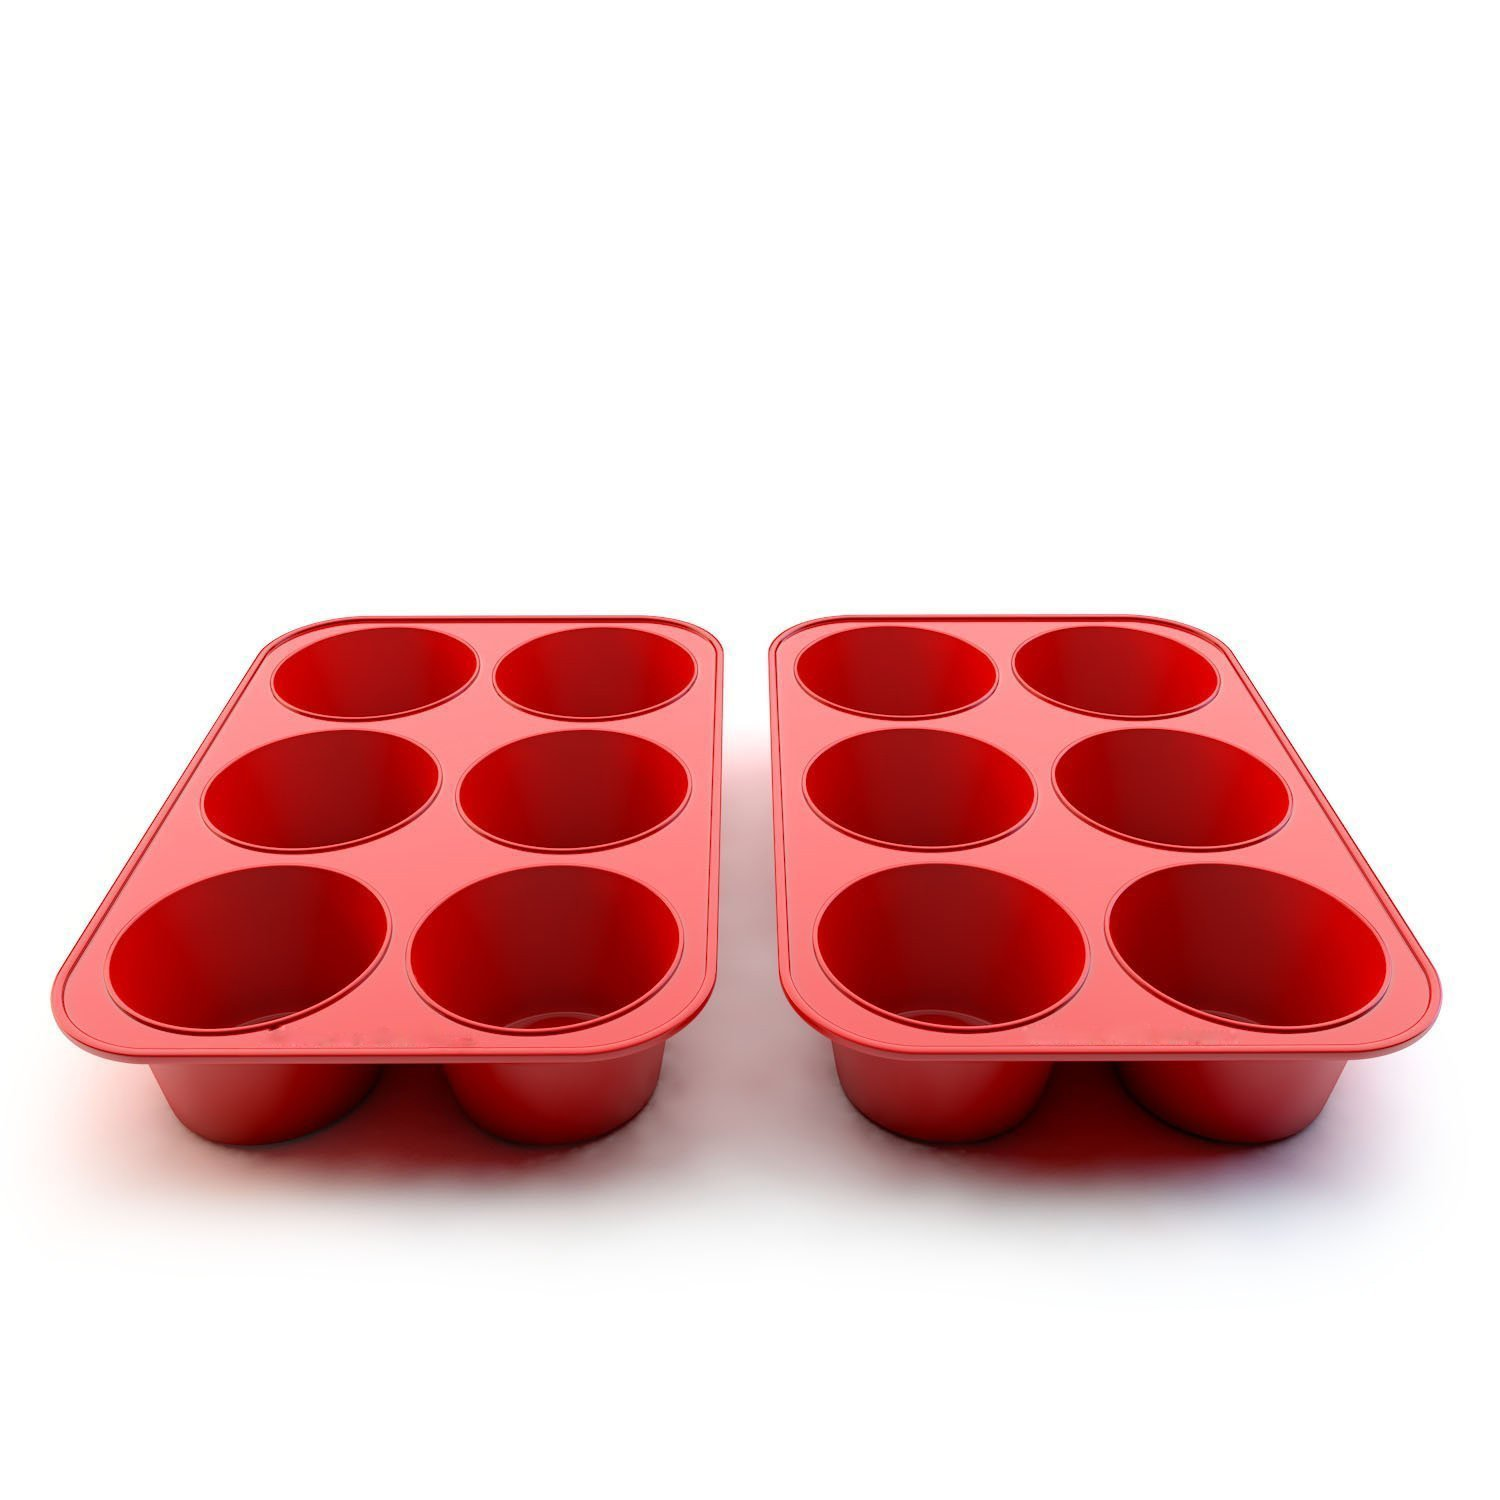 Wolecok Silicone Muffin & Cupcake Baking Pans, Non-Stick, Easy to Clean, Oven/Microwave/Dishwasher/Freezer Safe, Heat Resistant up to 450°F (Red-E)